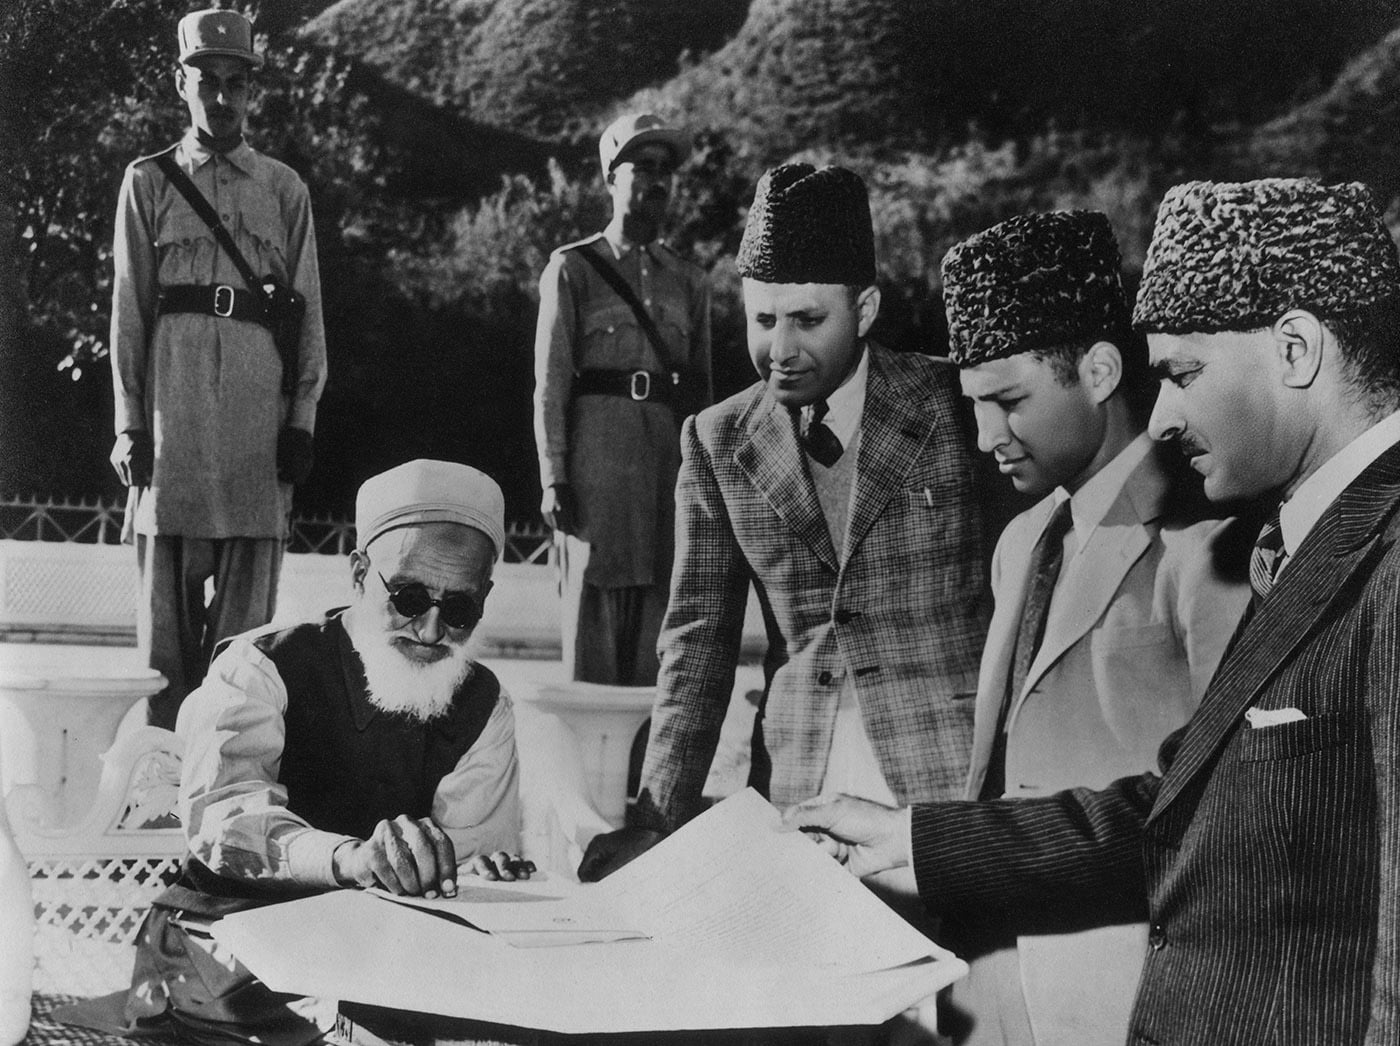 Miangul Abdul Wadud signs the Instrument of Accession enabling Swat to join Pakistan in 1947. On the right are his son Miangul Abdul Haq Jahanzeb, his grandson Miangul Aurangzeb and the Chief Secretary of Swat, Mr Attaullah. — Courtesy Miangul Aurangzeb Archives, Swat